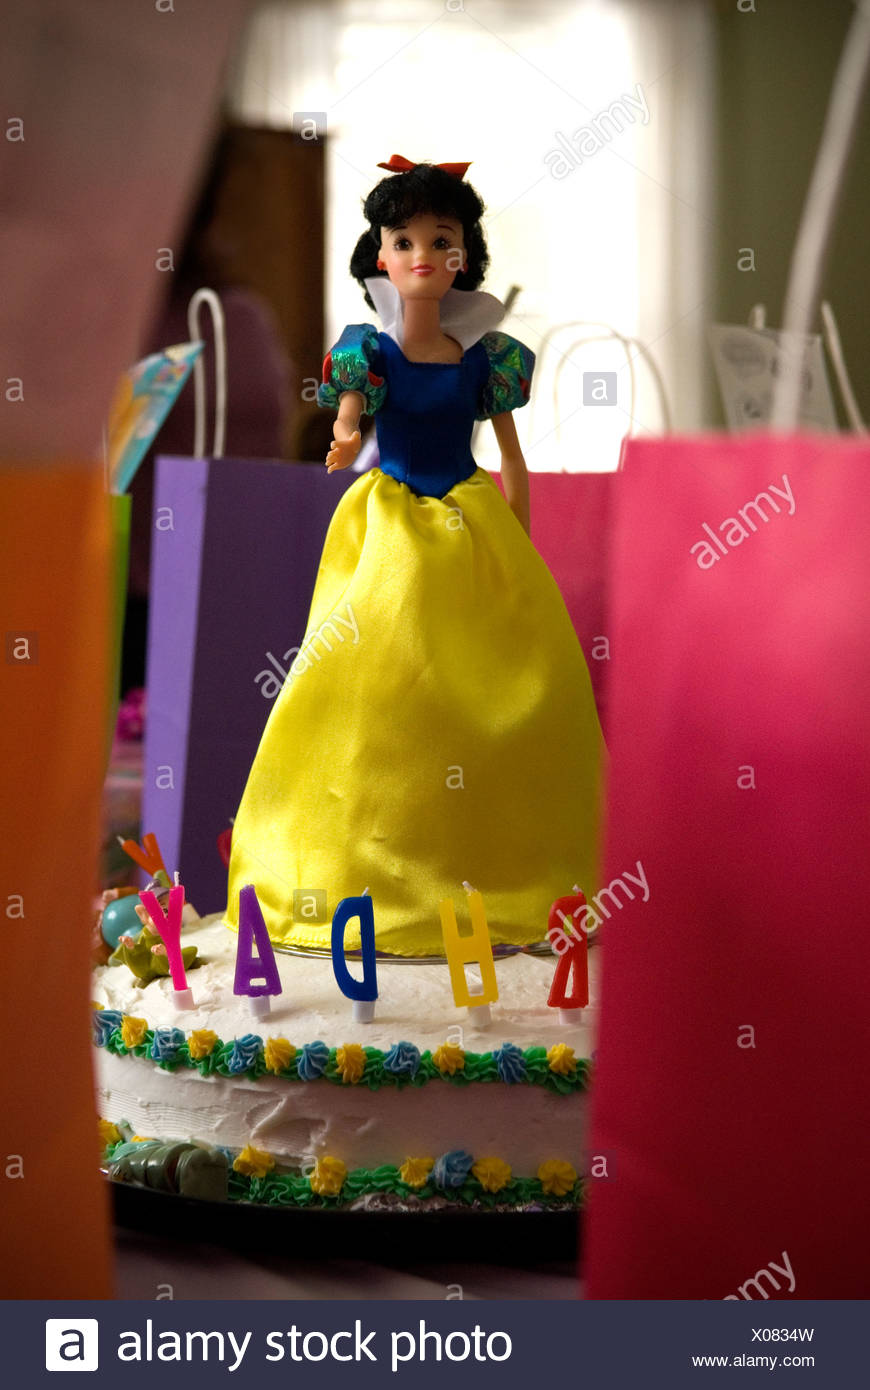 Incredible Birthday Cake Decorated With Snow White Doll Stock Photo Funny Birthday Cards Online Alyptdamsfinfo